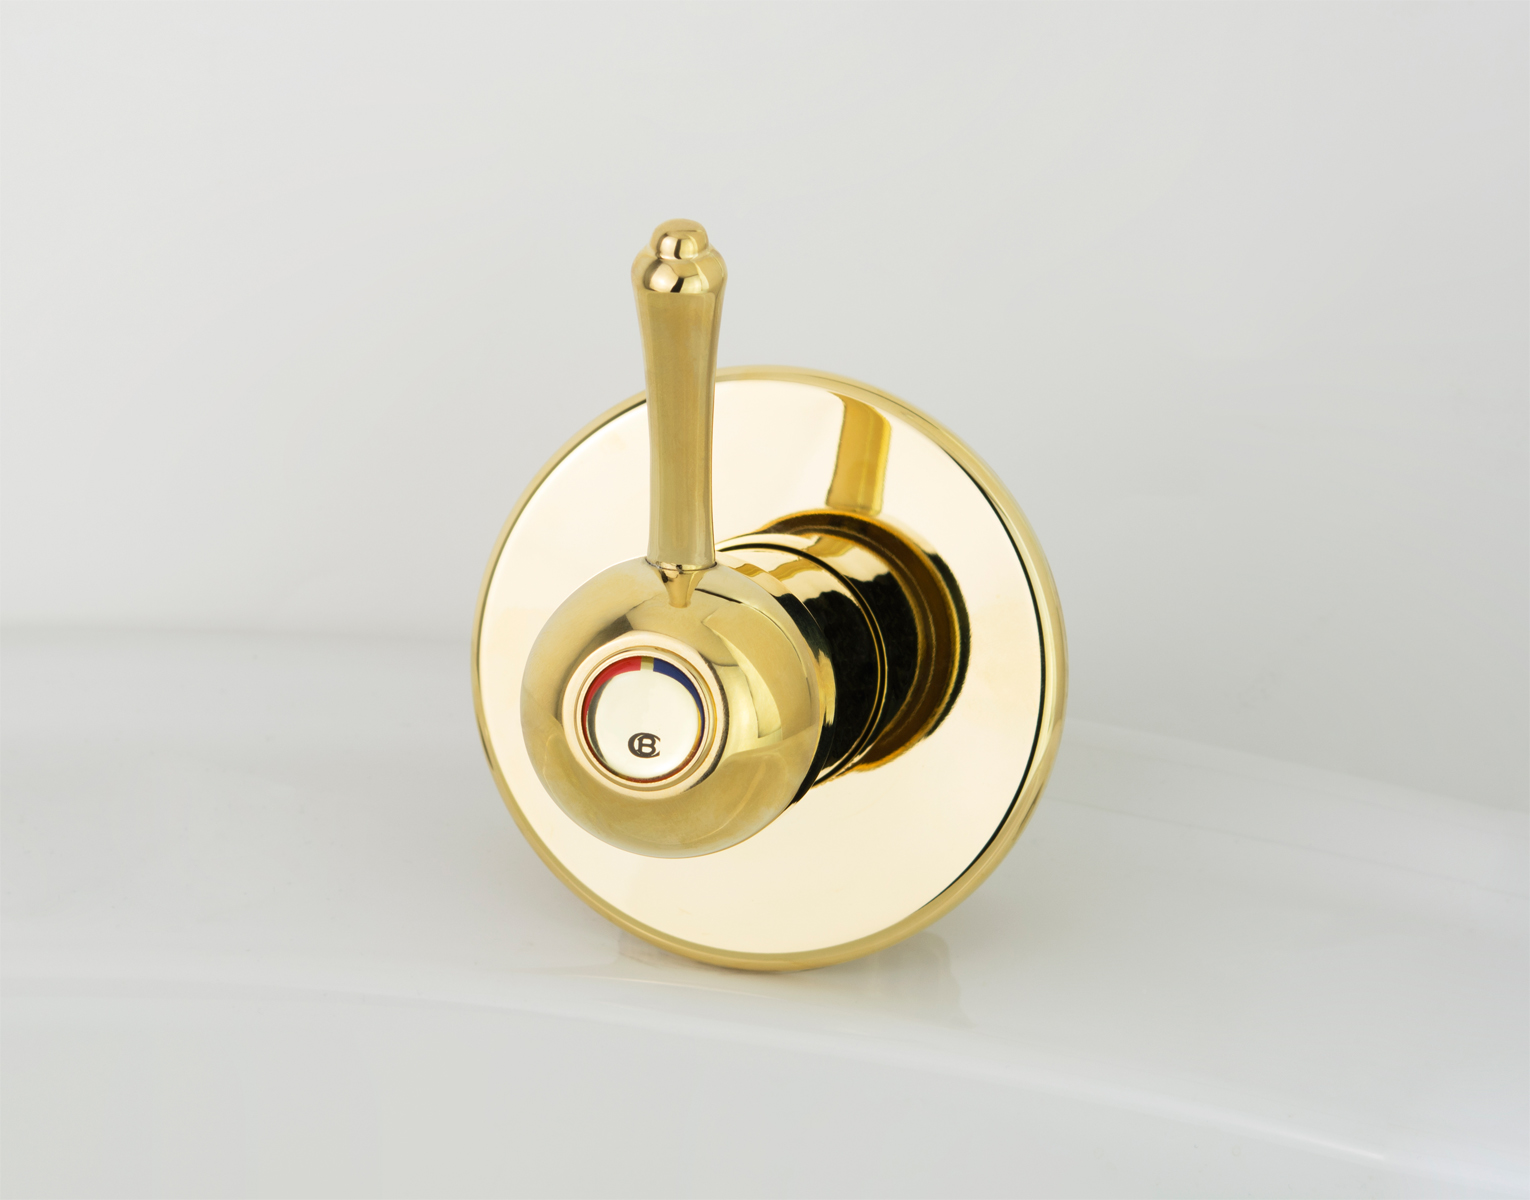 Roulette Lever Wall Mixer in Antique Brass